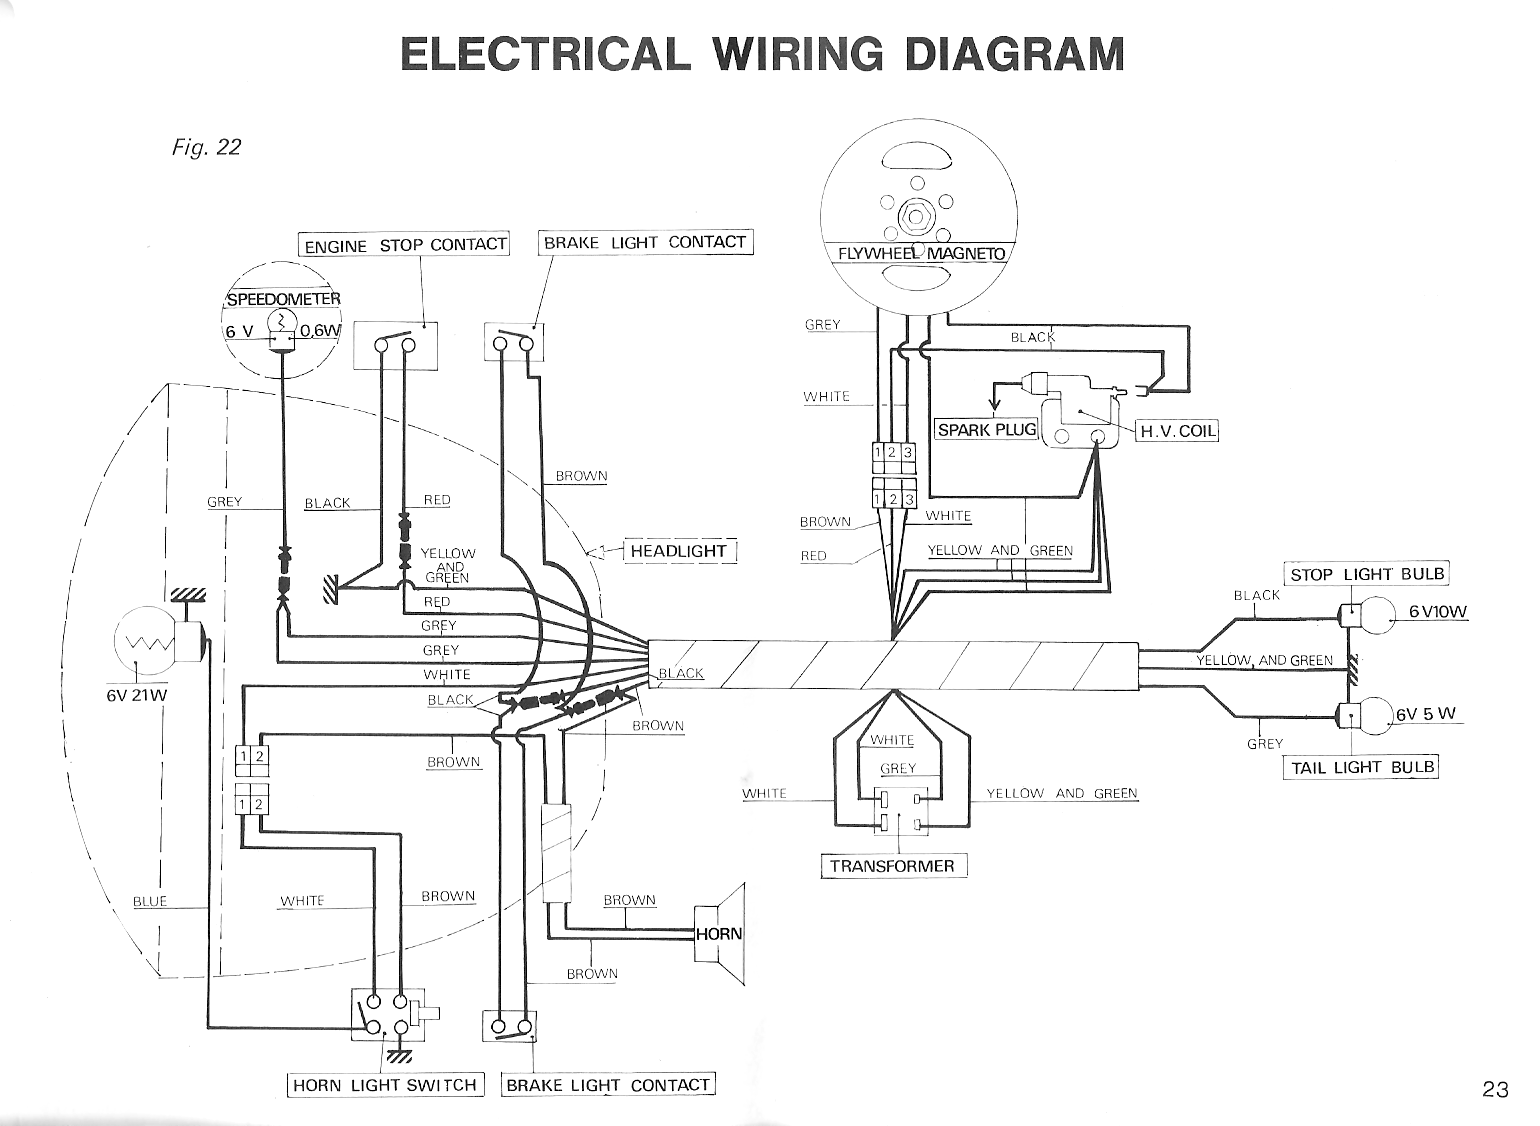 peugeot wiring diagrams moped wiki rh mopedarmy com Braided Wire Loom Braided Wire Loom